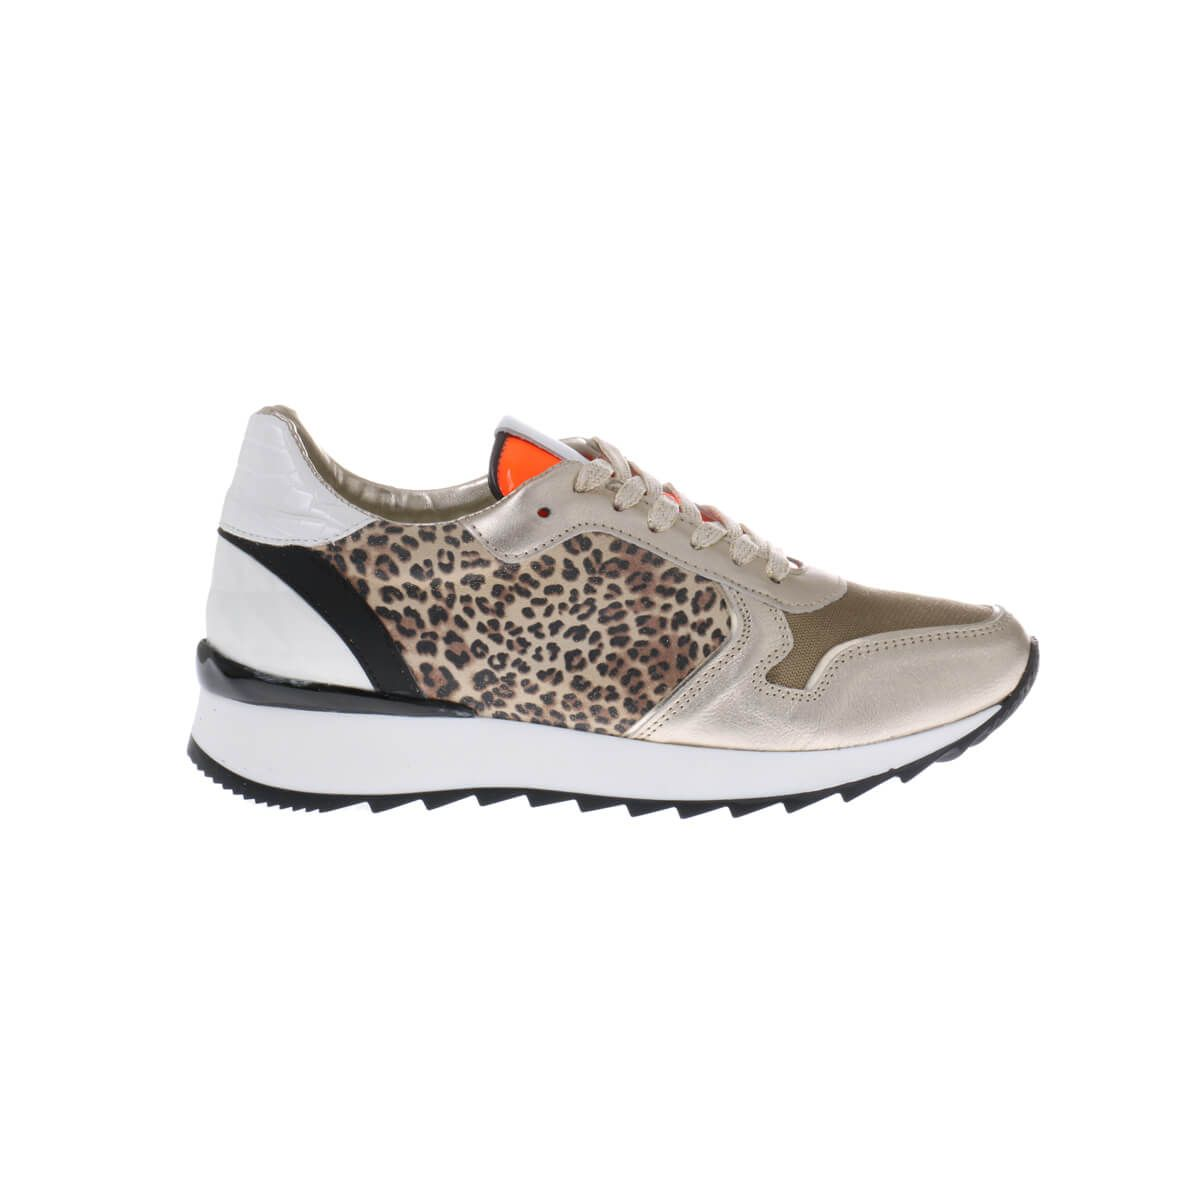 HIP Shoe Style for women D1889 Sneakers Goud Panterprint